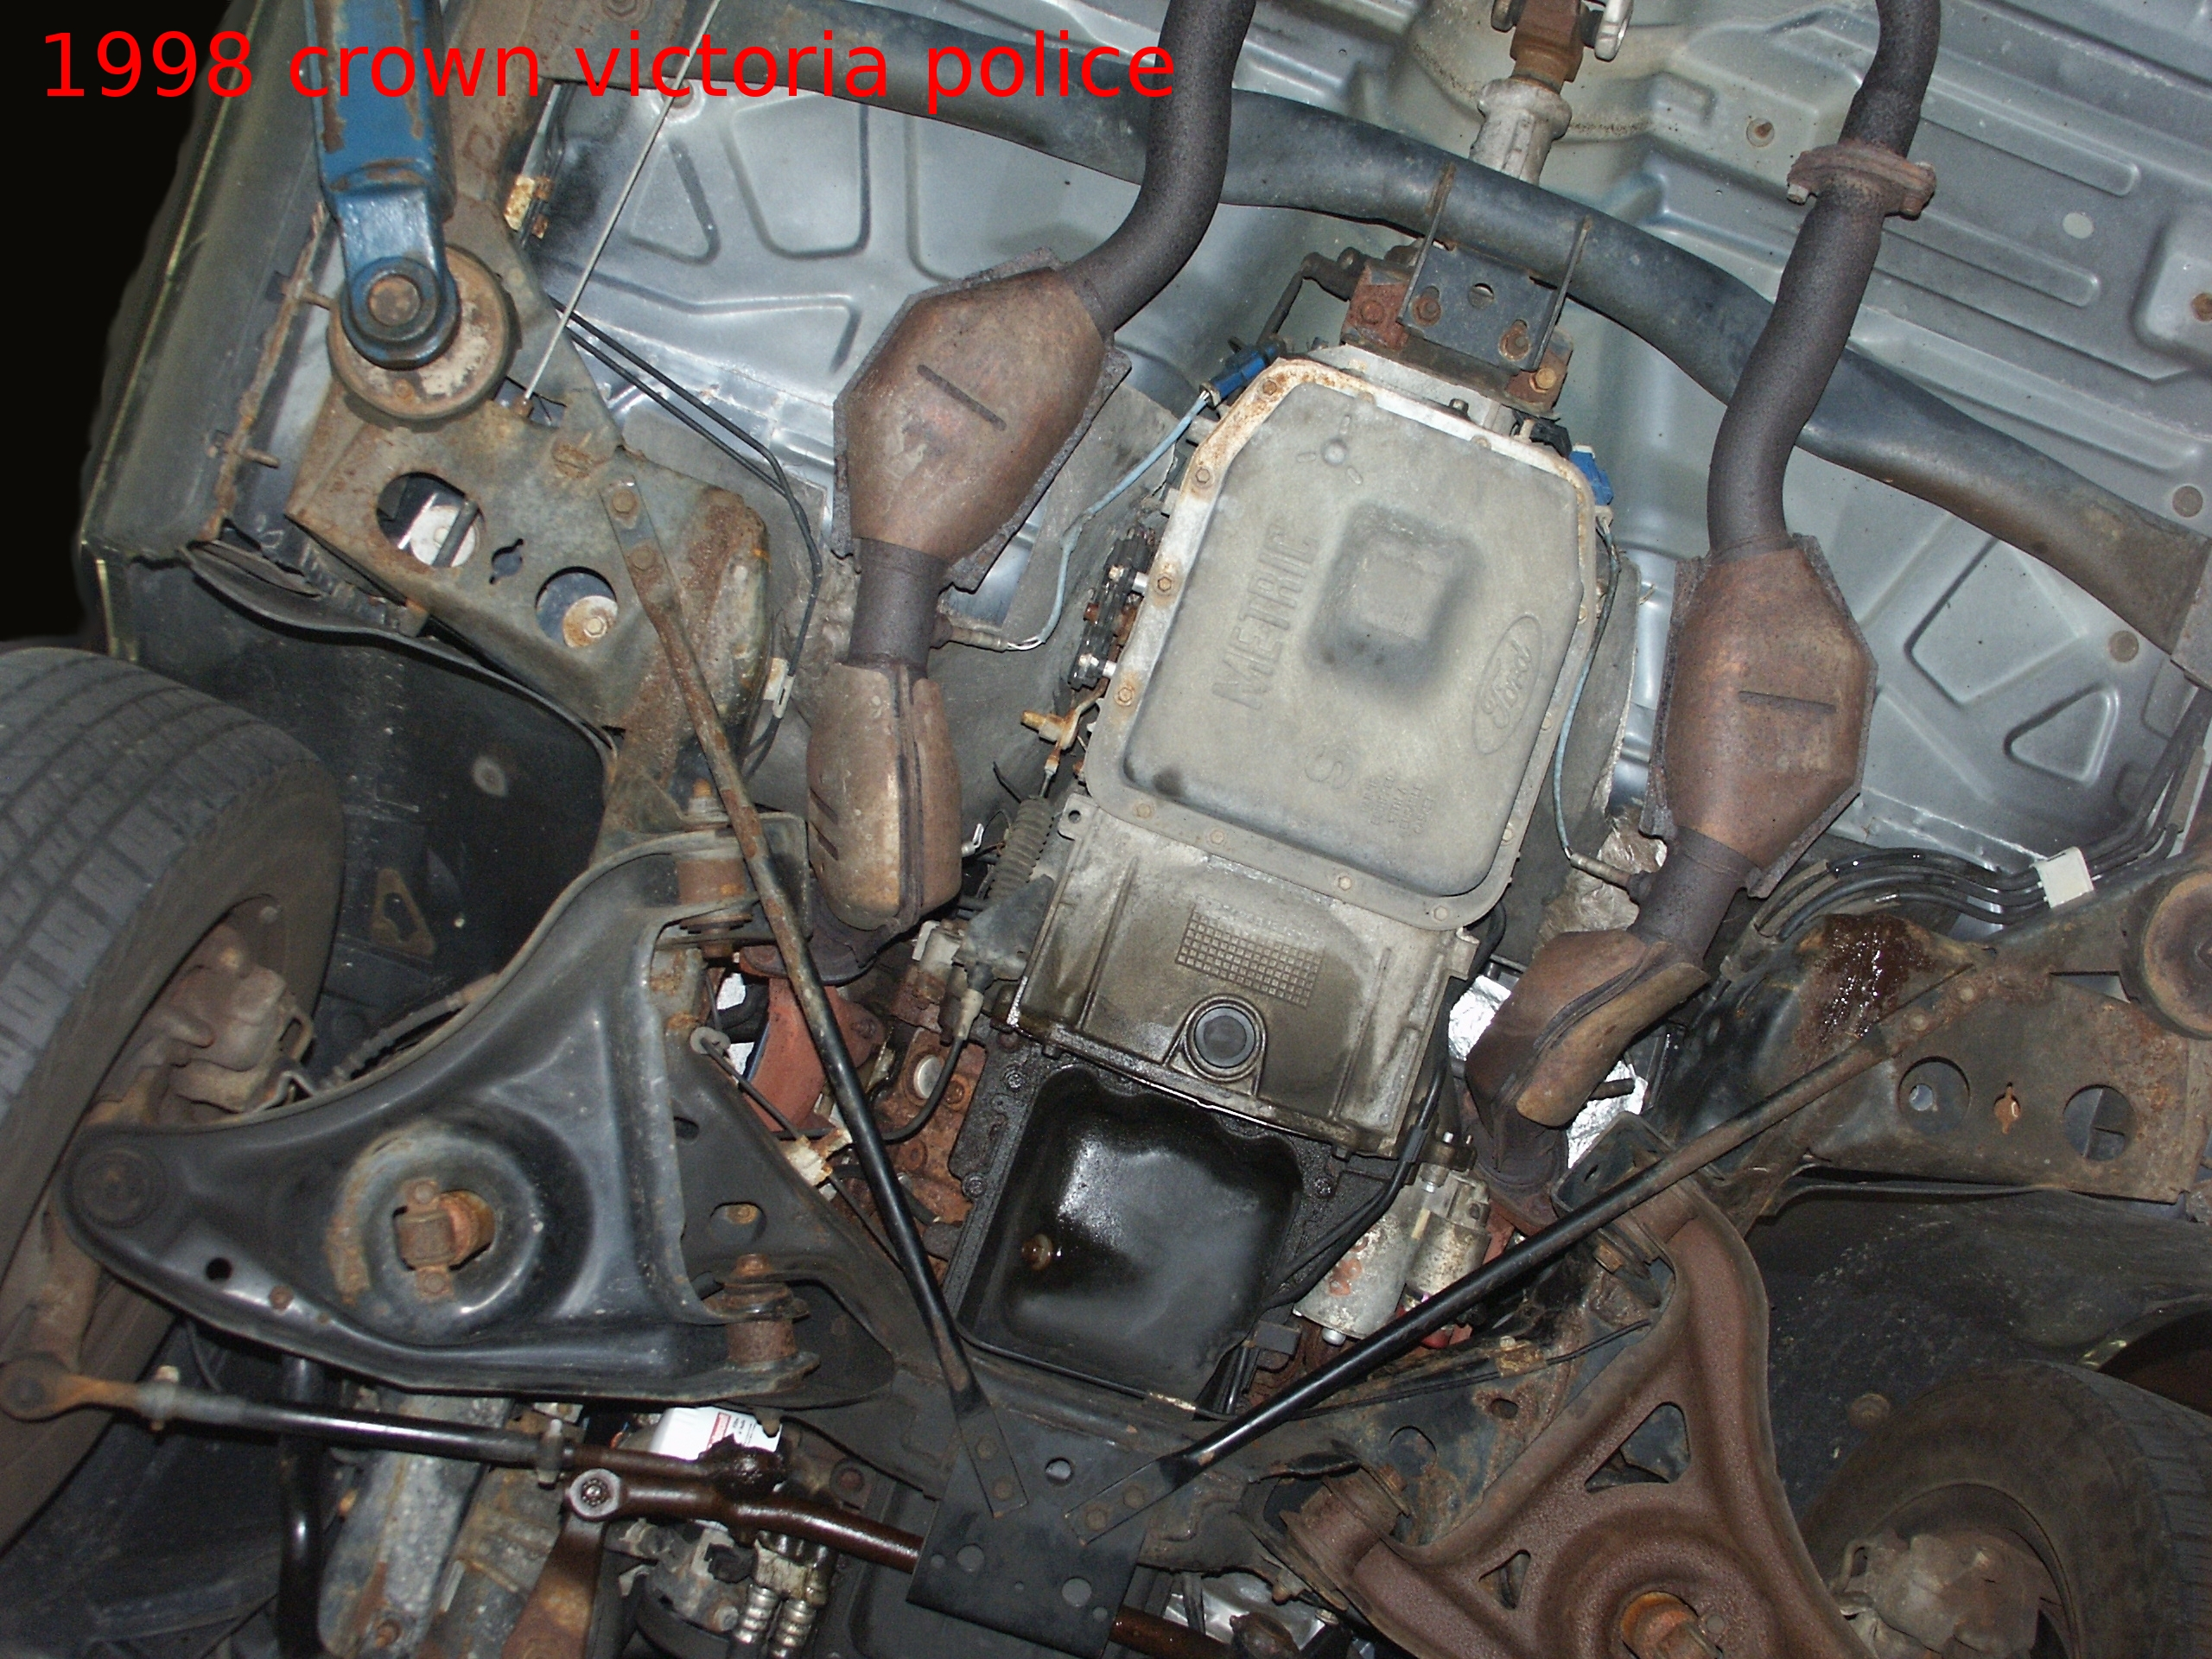 Honda Fuel Filter Installed Ford Crown Victoria Undercar Picture Scrapbook